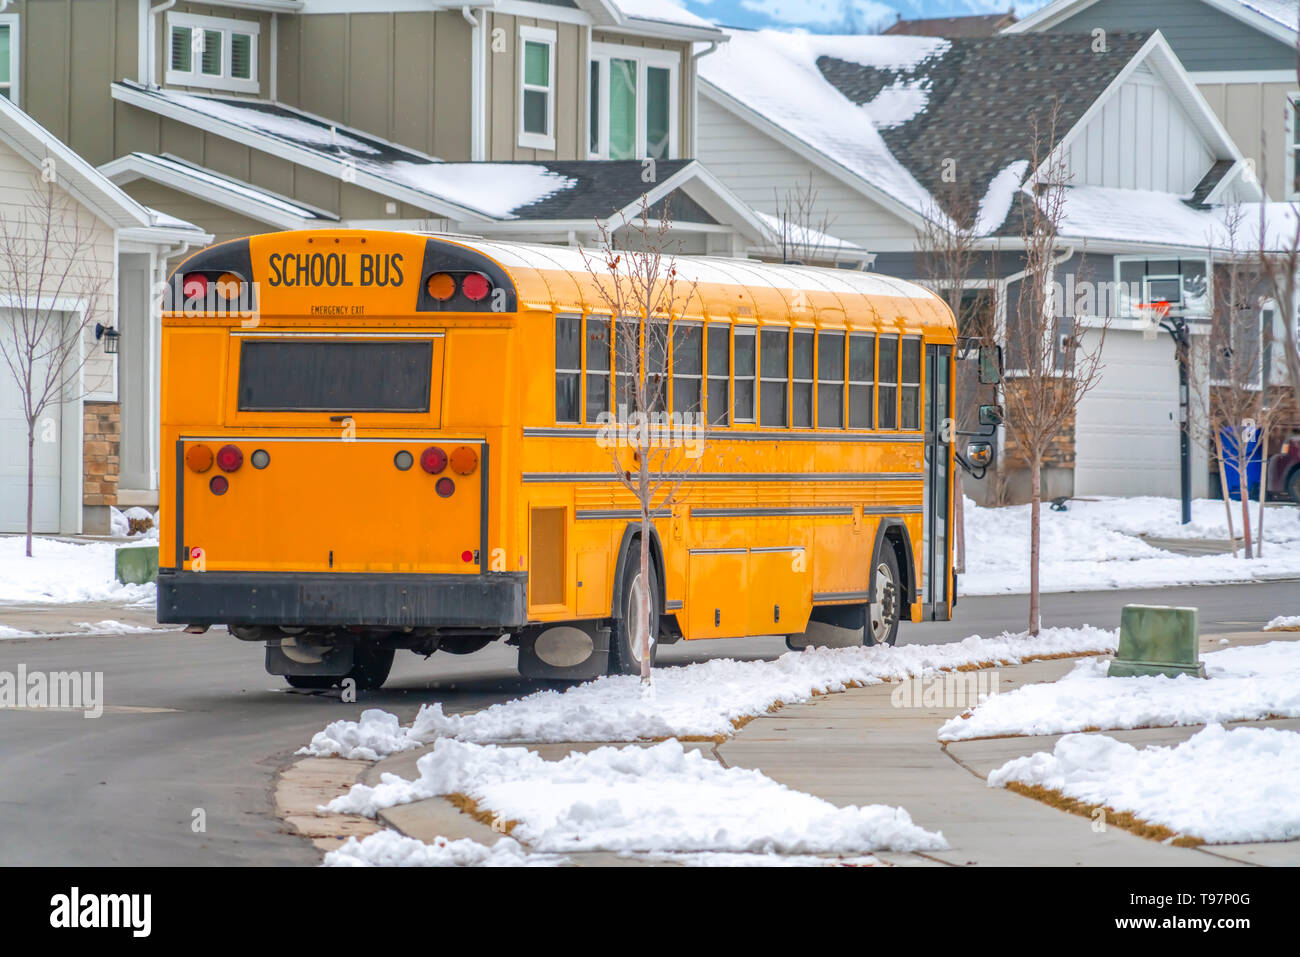 Rear view of a yellow school bus running on a road with fresh snow in winter - Stock Image